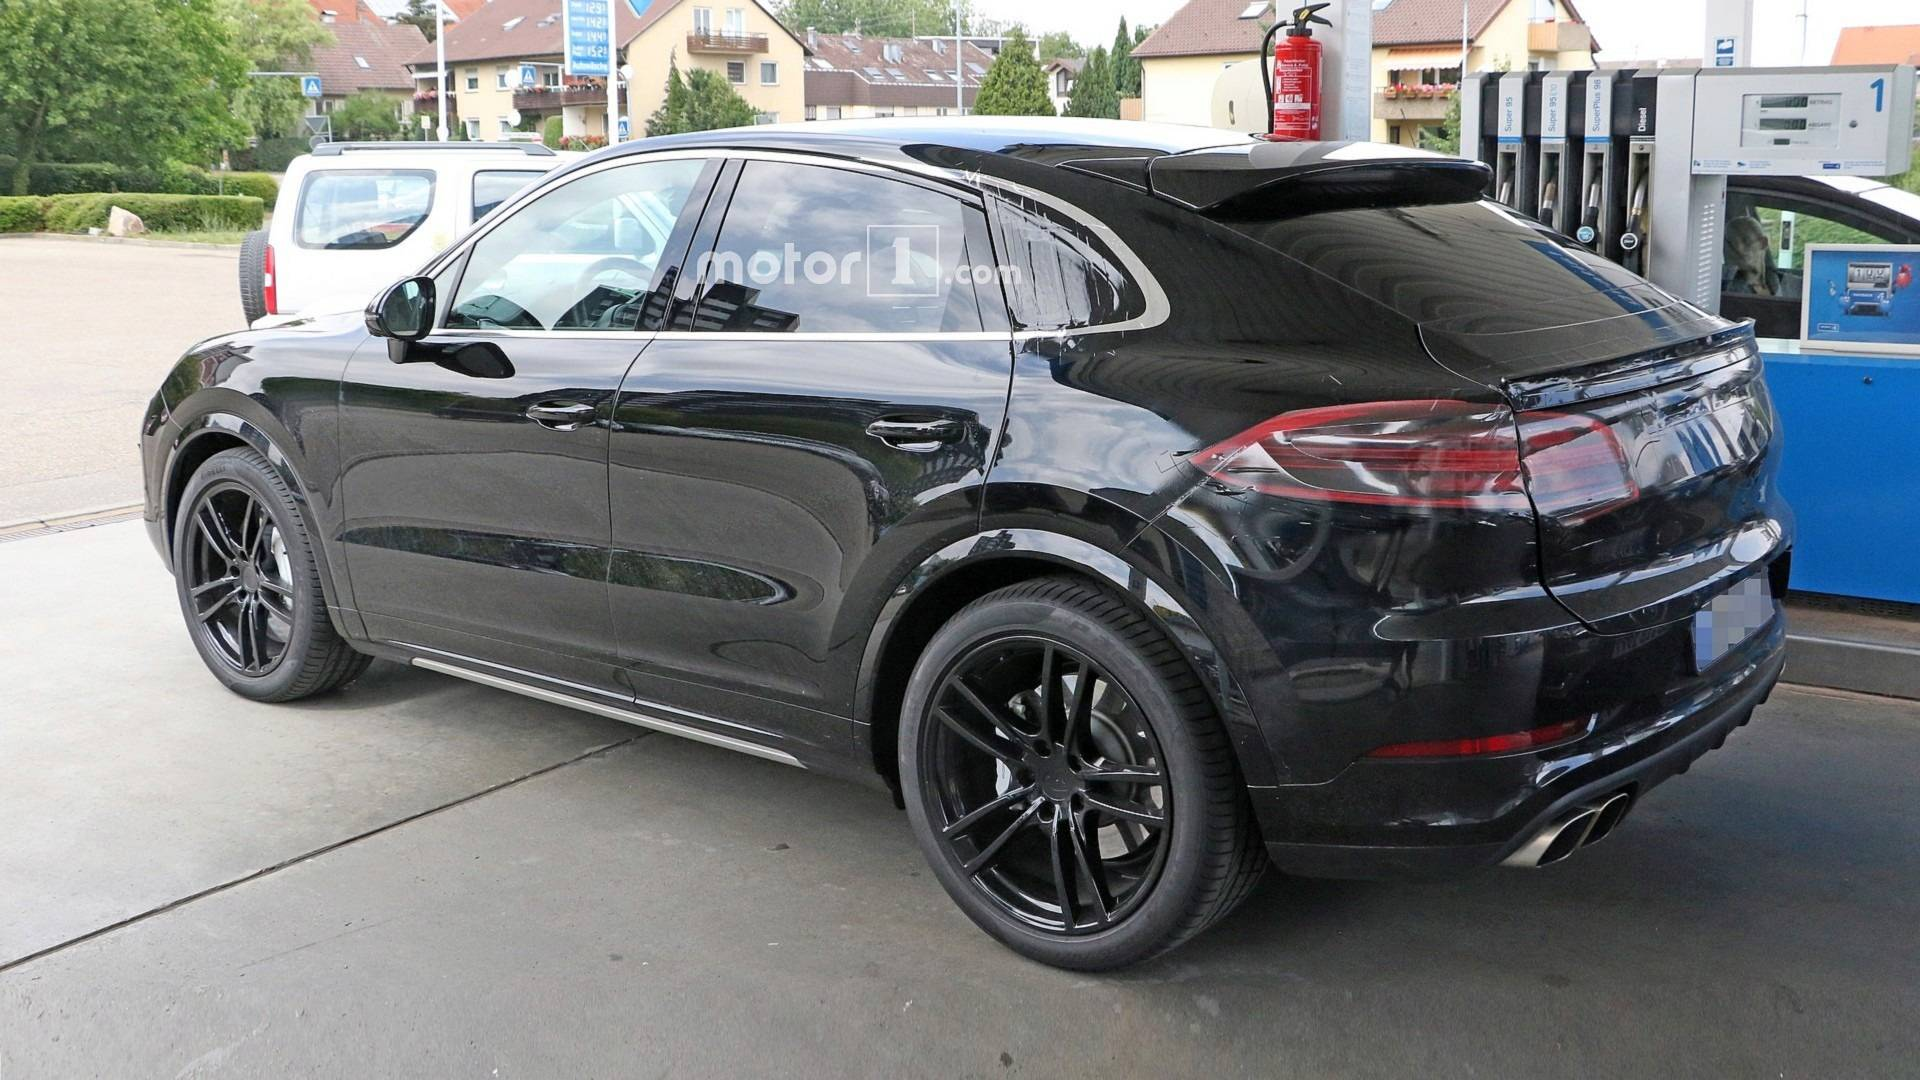 2020 Porsche Macan: News, Turbo, GTS, Release >> 2020 Porsche Cayenne Coupe Spied Inside And Out At Gas Station